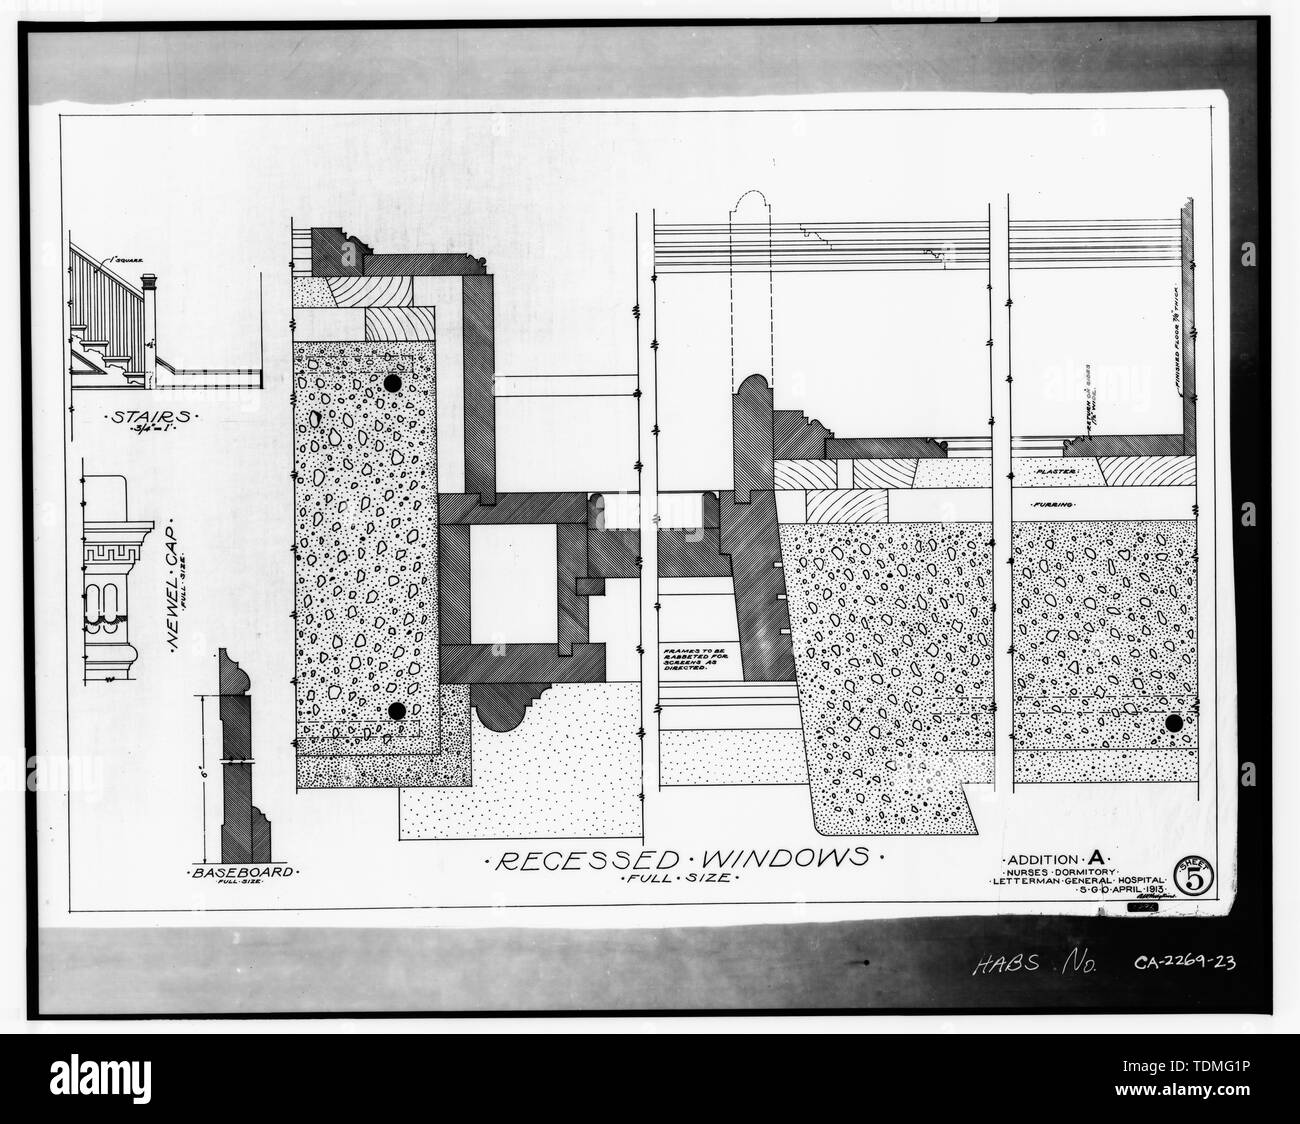 PHOTOCOPY OF ORIGINAL DRAWING (from Directorate of Facilities Engineering, HQ Presidio of San Francisco, California 94129) RECESSED WINDOWS (DETAILS), ADDITION A, NURSES DORMITORY, LETTERMAN GENERAL HOSPITAL, DEC 1914, SHEET 5. - Letterman General Hospital, Nurses' Quarters, Girard Road and Lincoln Boulevard, Presidio of San Francisco, San Francisco, San Francisco County, CA - Stock Image